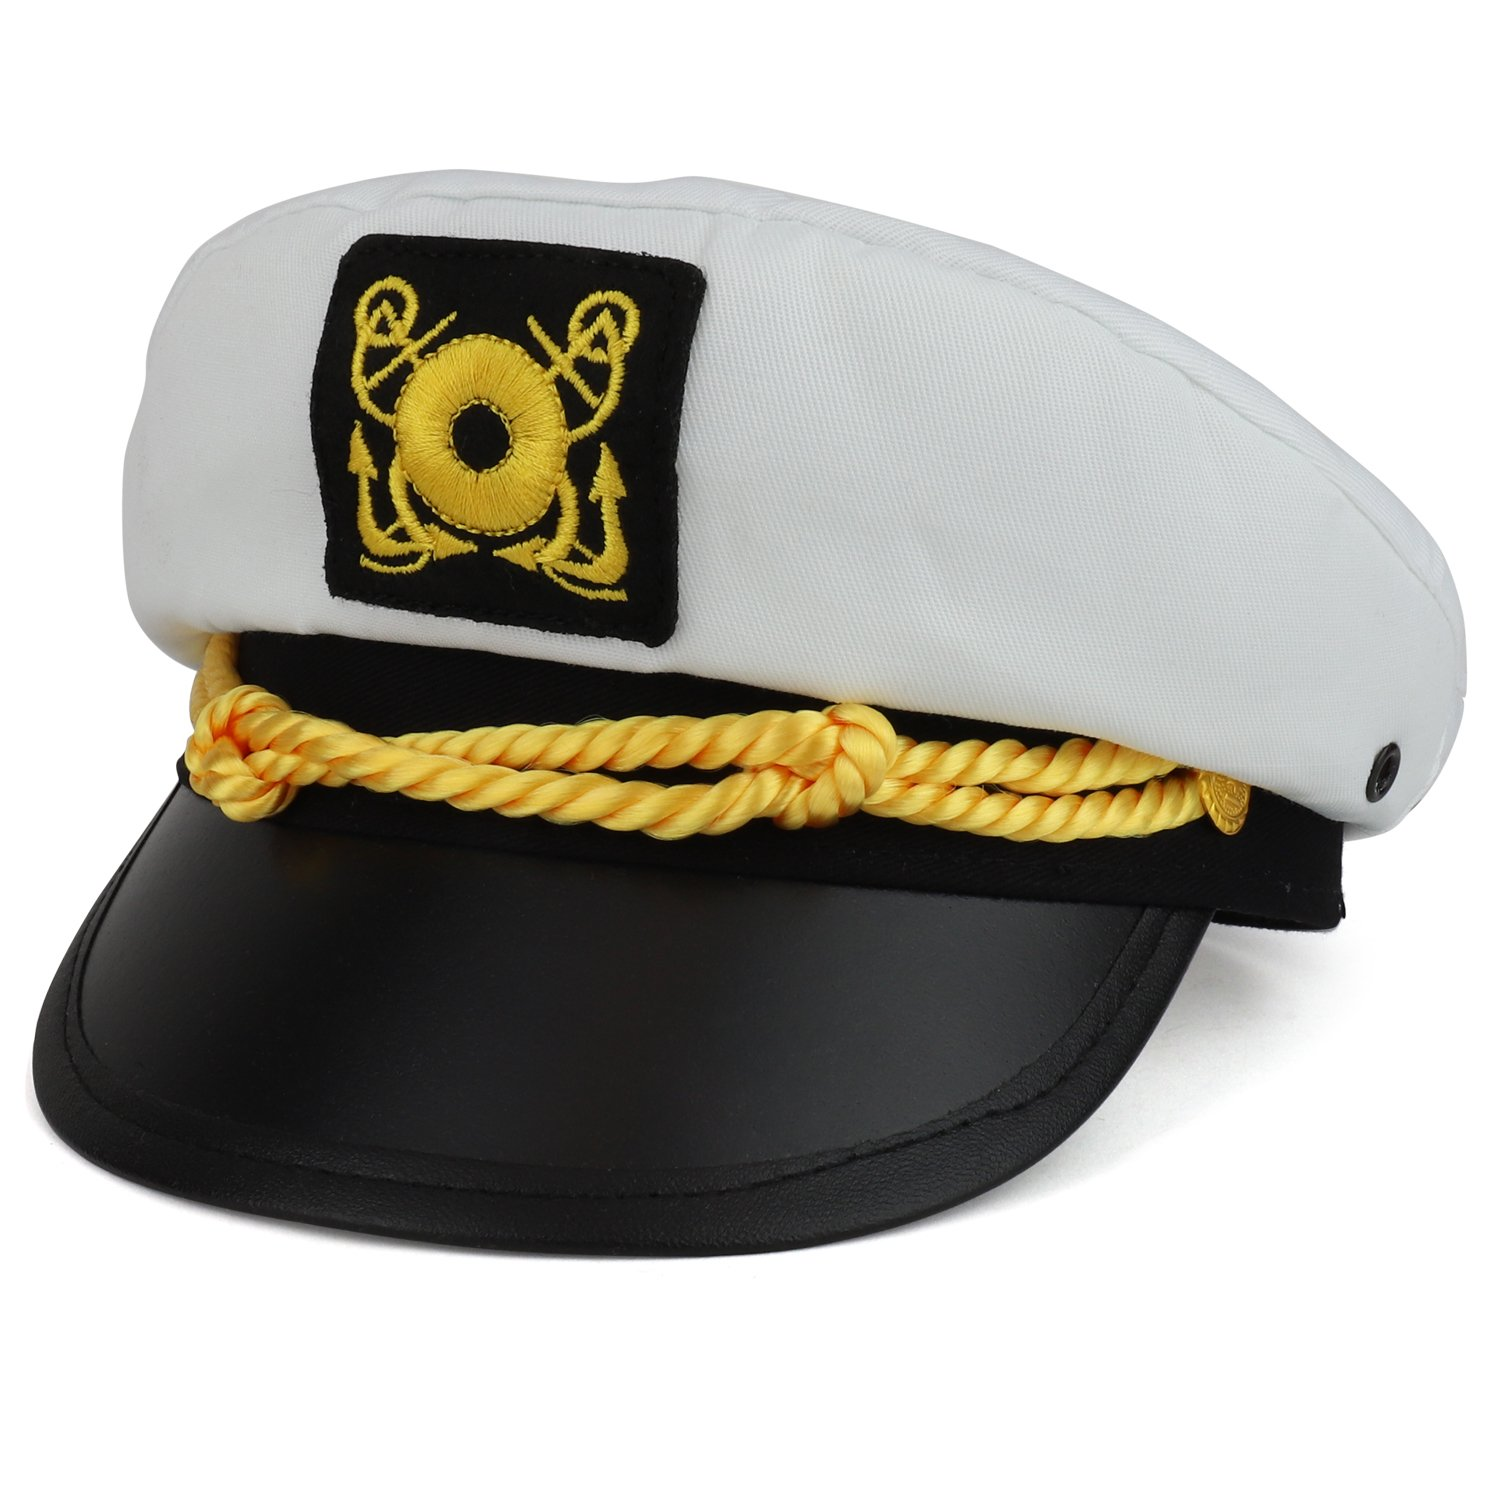 Armycrew Child Size Youth Cotton Yacht Captain Costume Sailor Hat - WHITE